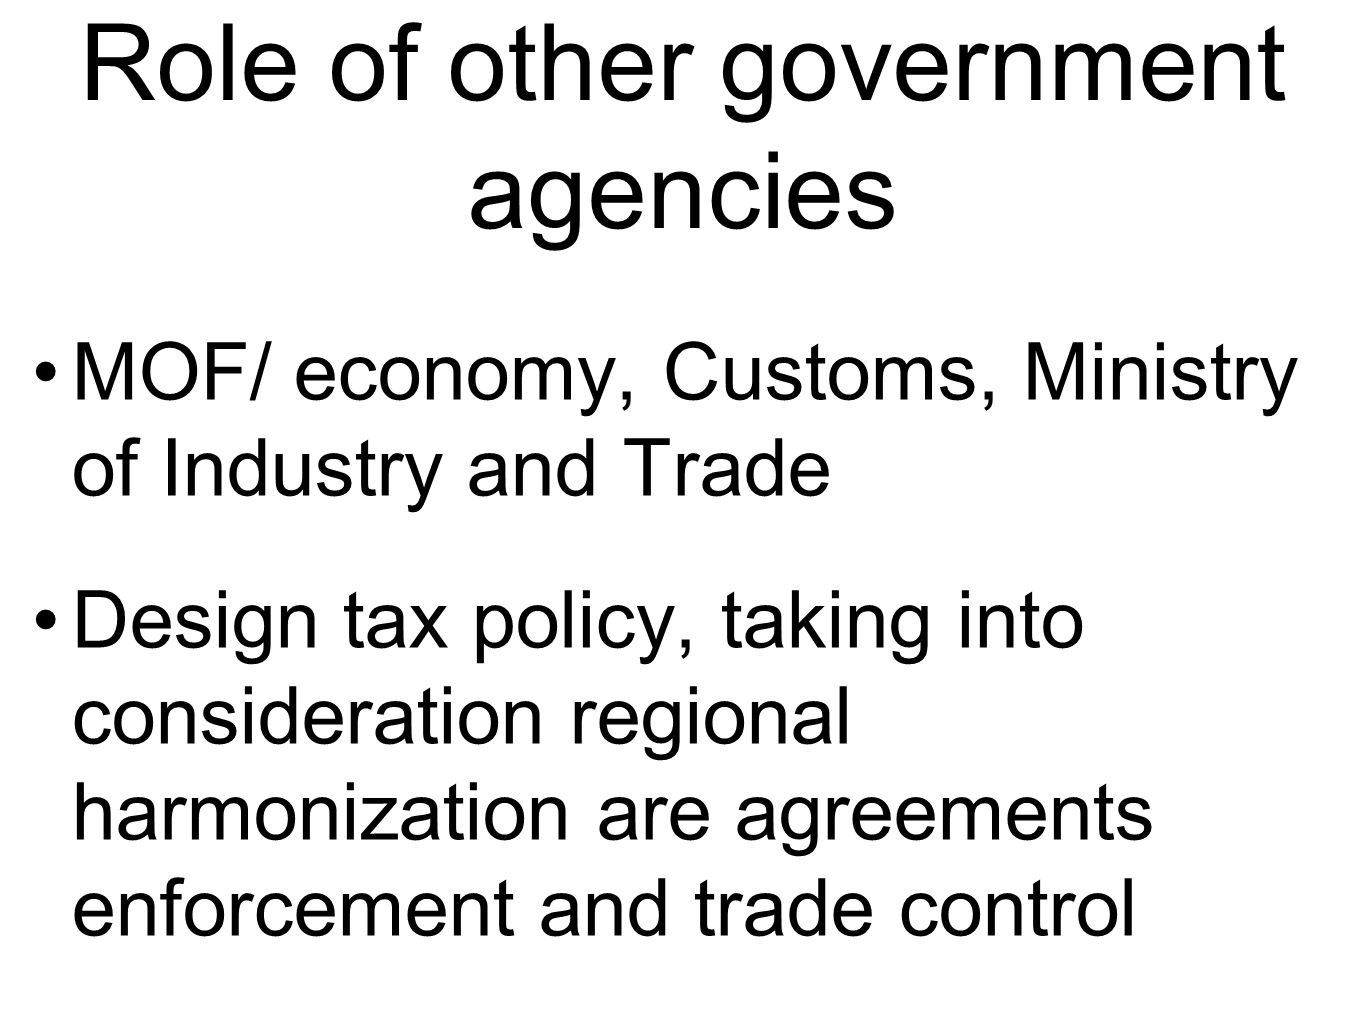 Role of other government agencies MOF/ economy, Customs, Ministry of Industry and Trade Design tax policy, taking into consideration regional harmonization are agreements enforcement and trade control